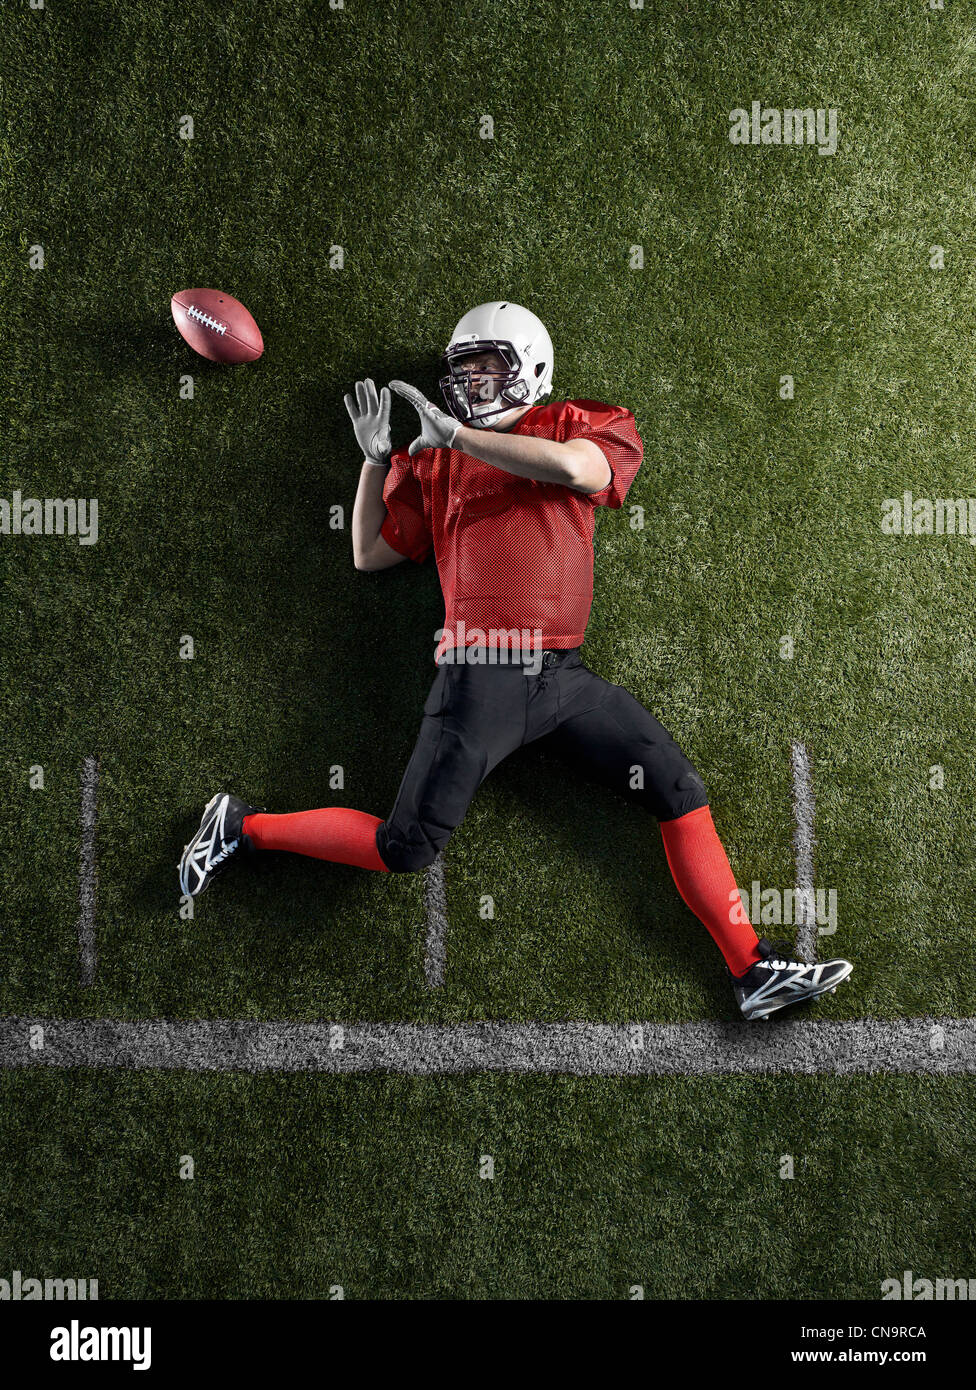 Football player laying on field - Stock Image